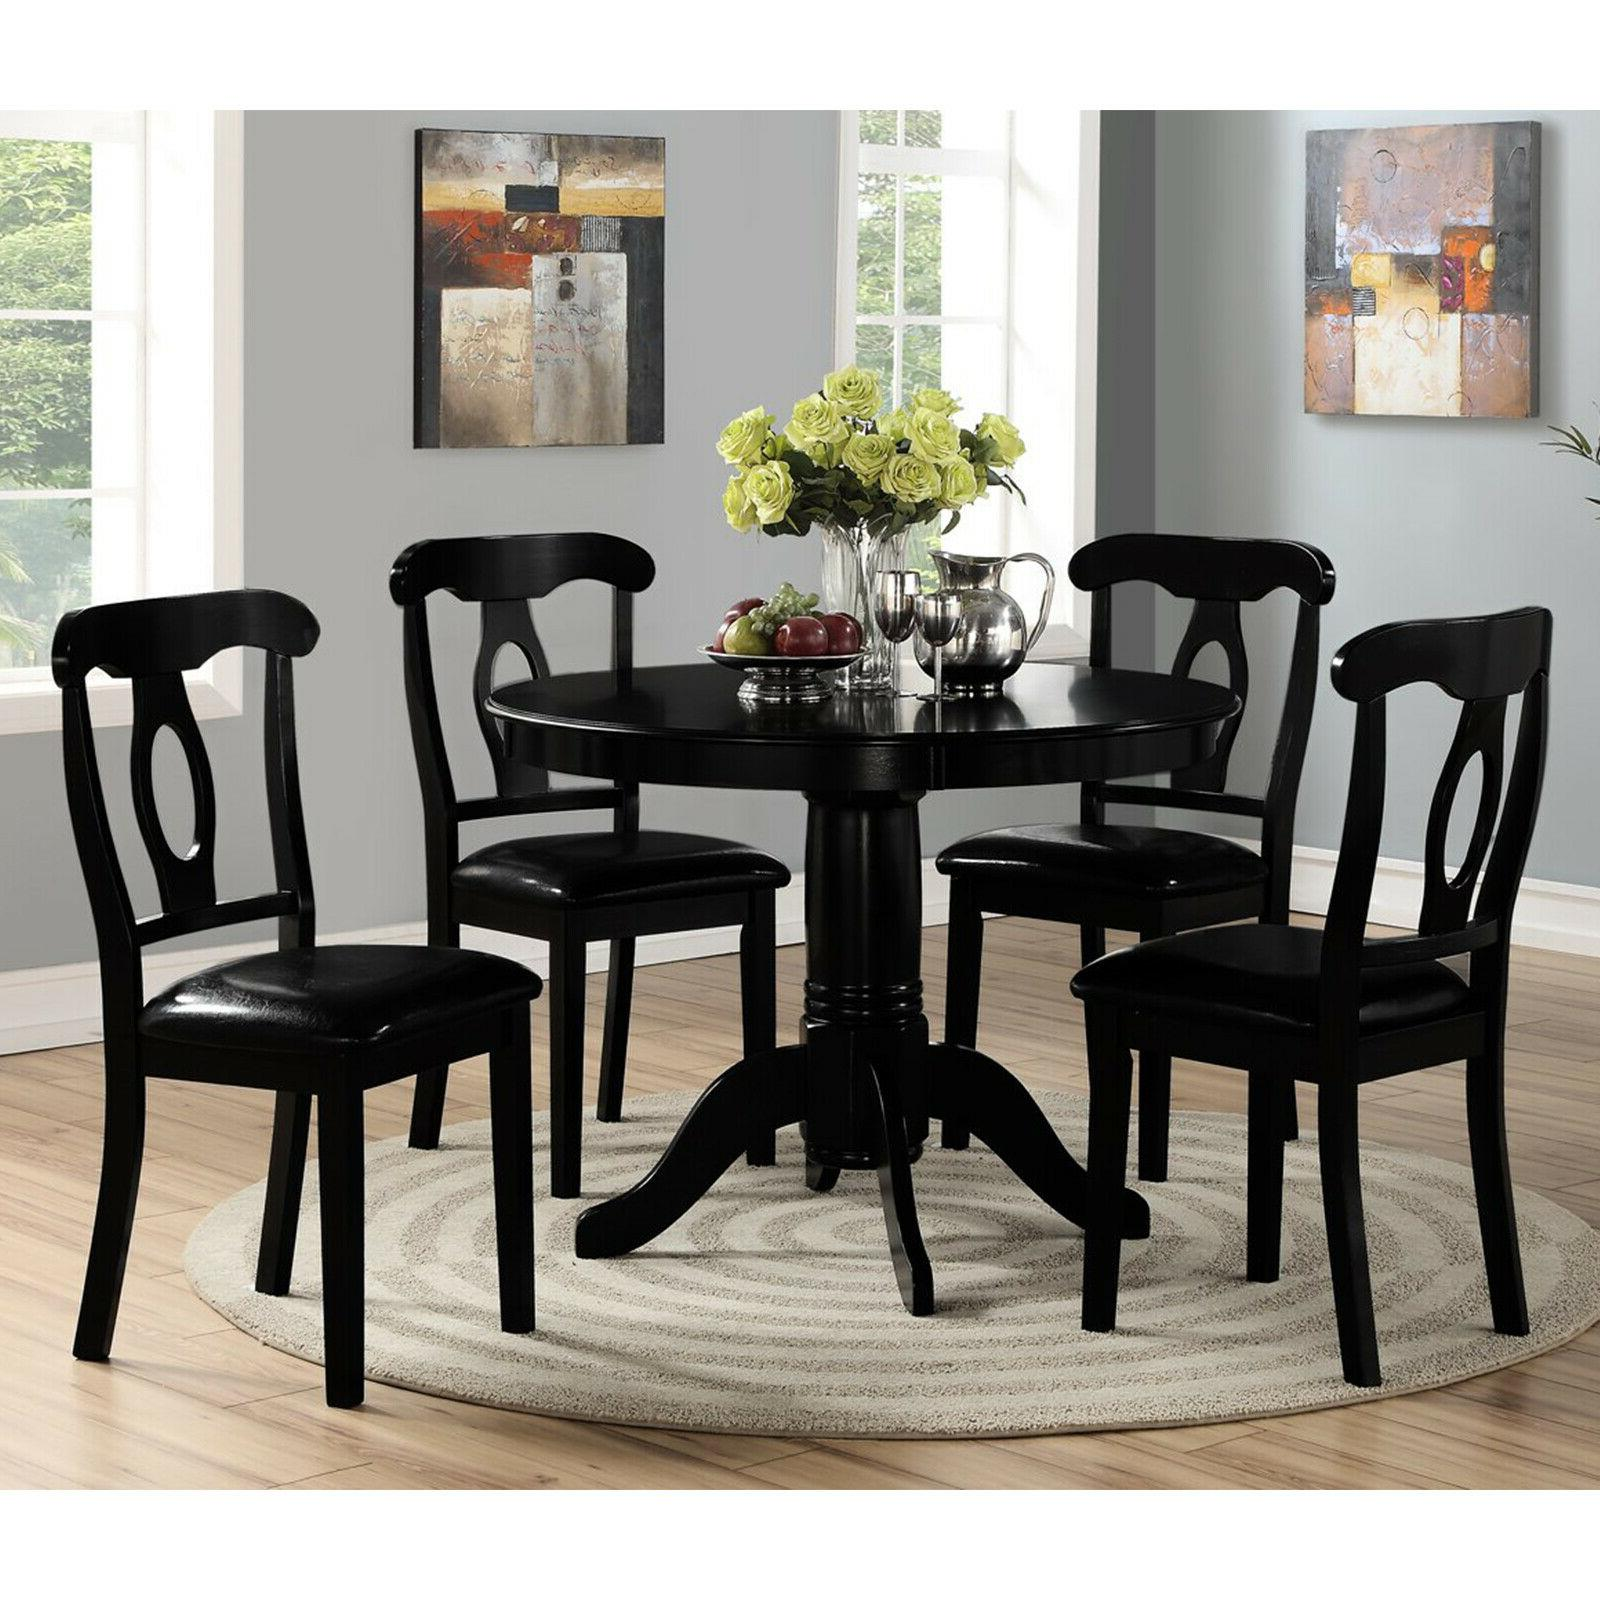 Dining And Room 5 Modern Set